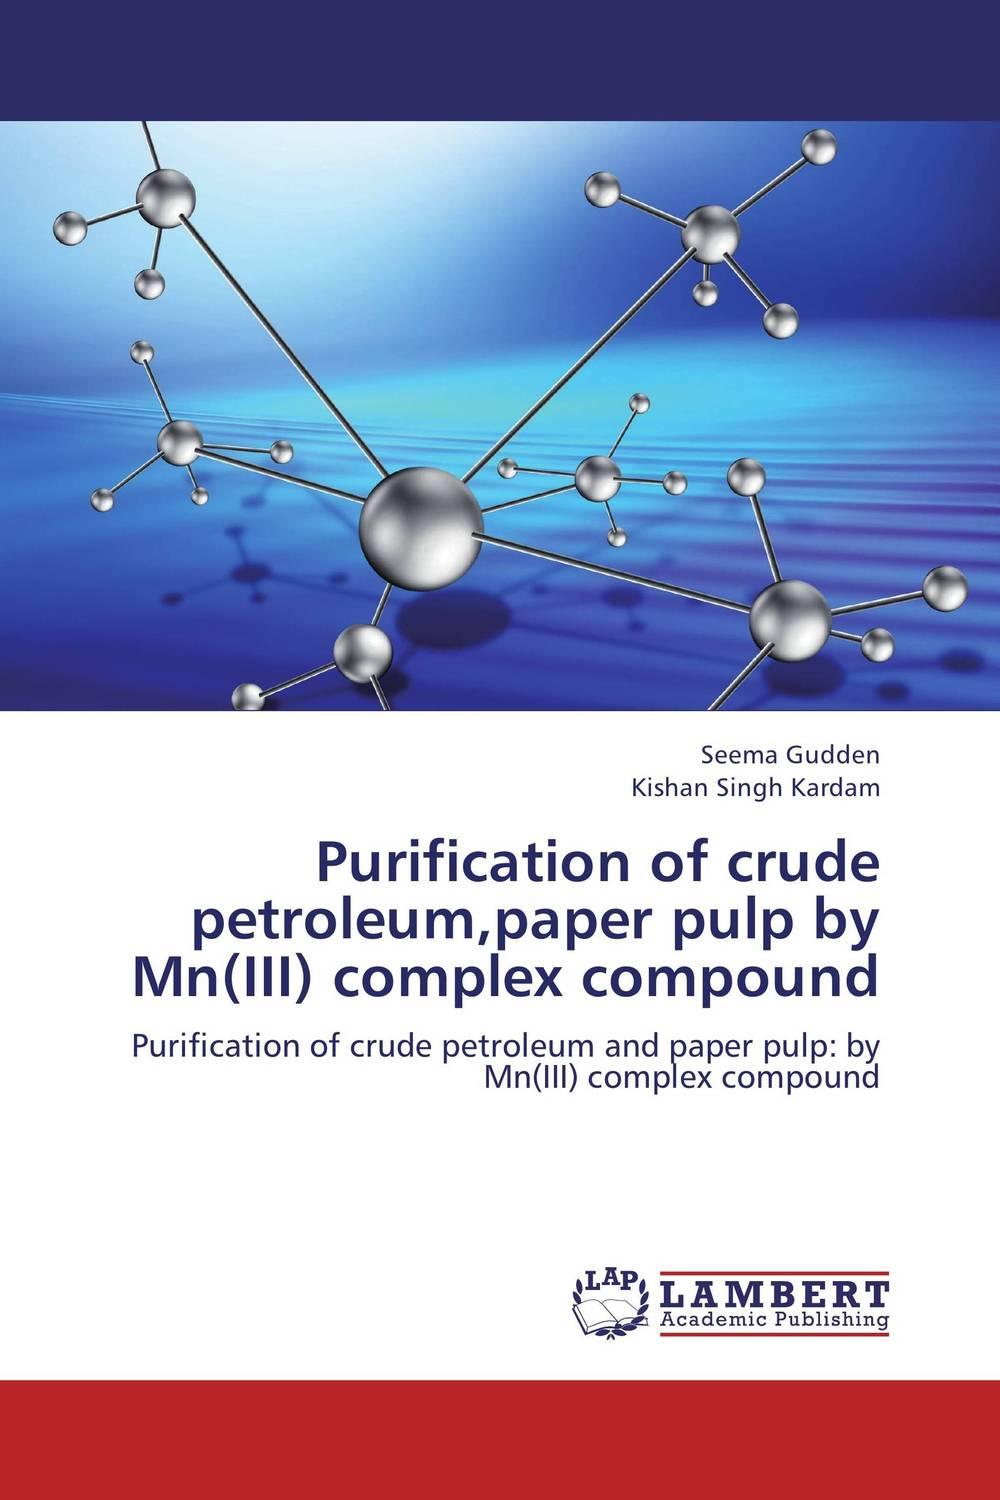 Purification of crude petroleum,paper pulp by Mn(III) complex compound biotechnology in the pulp and paper industry 21